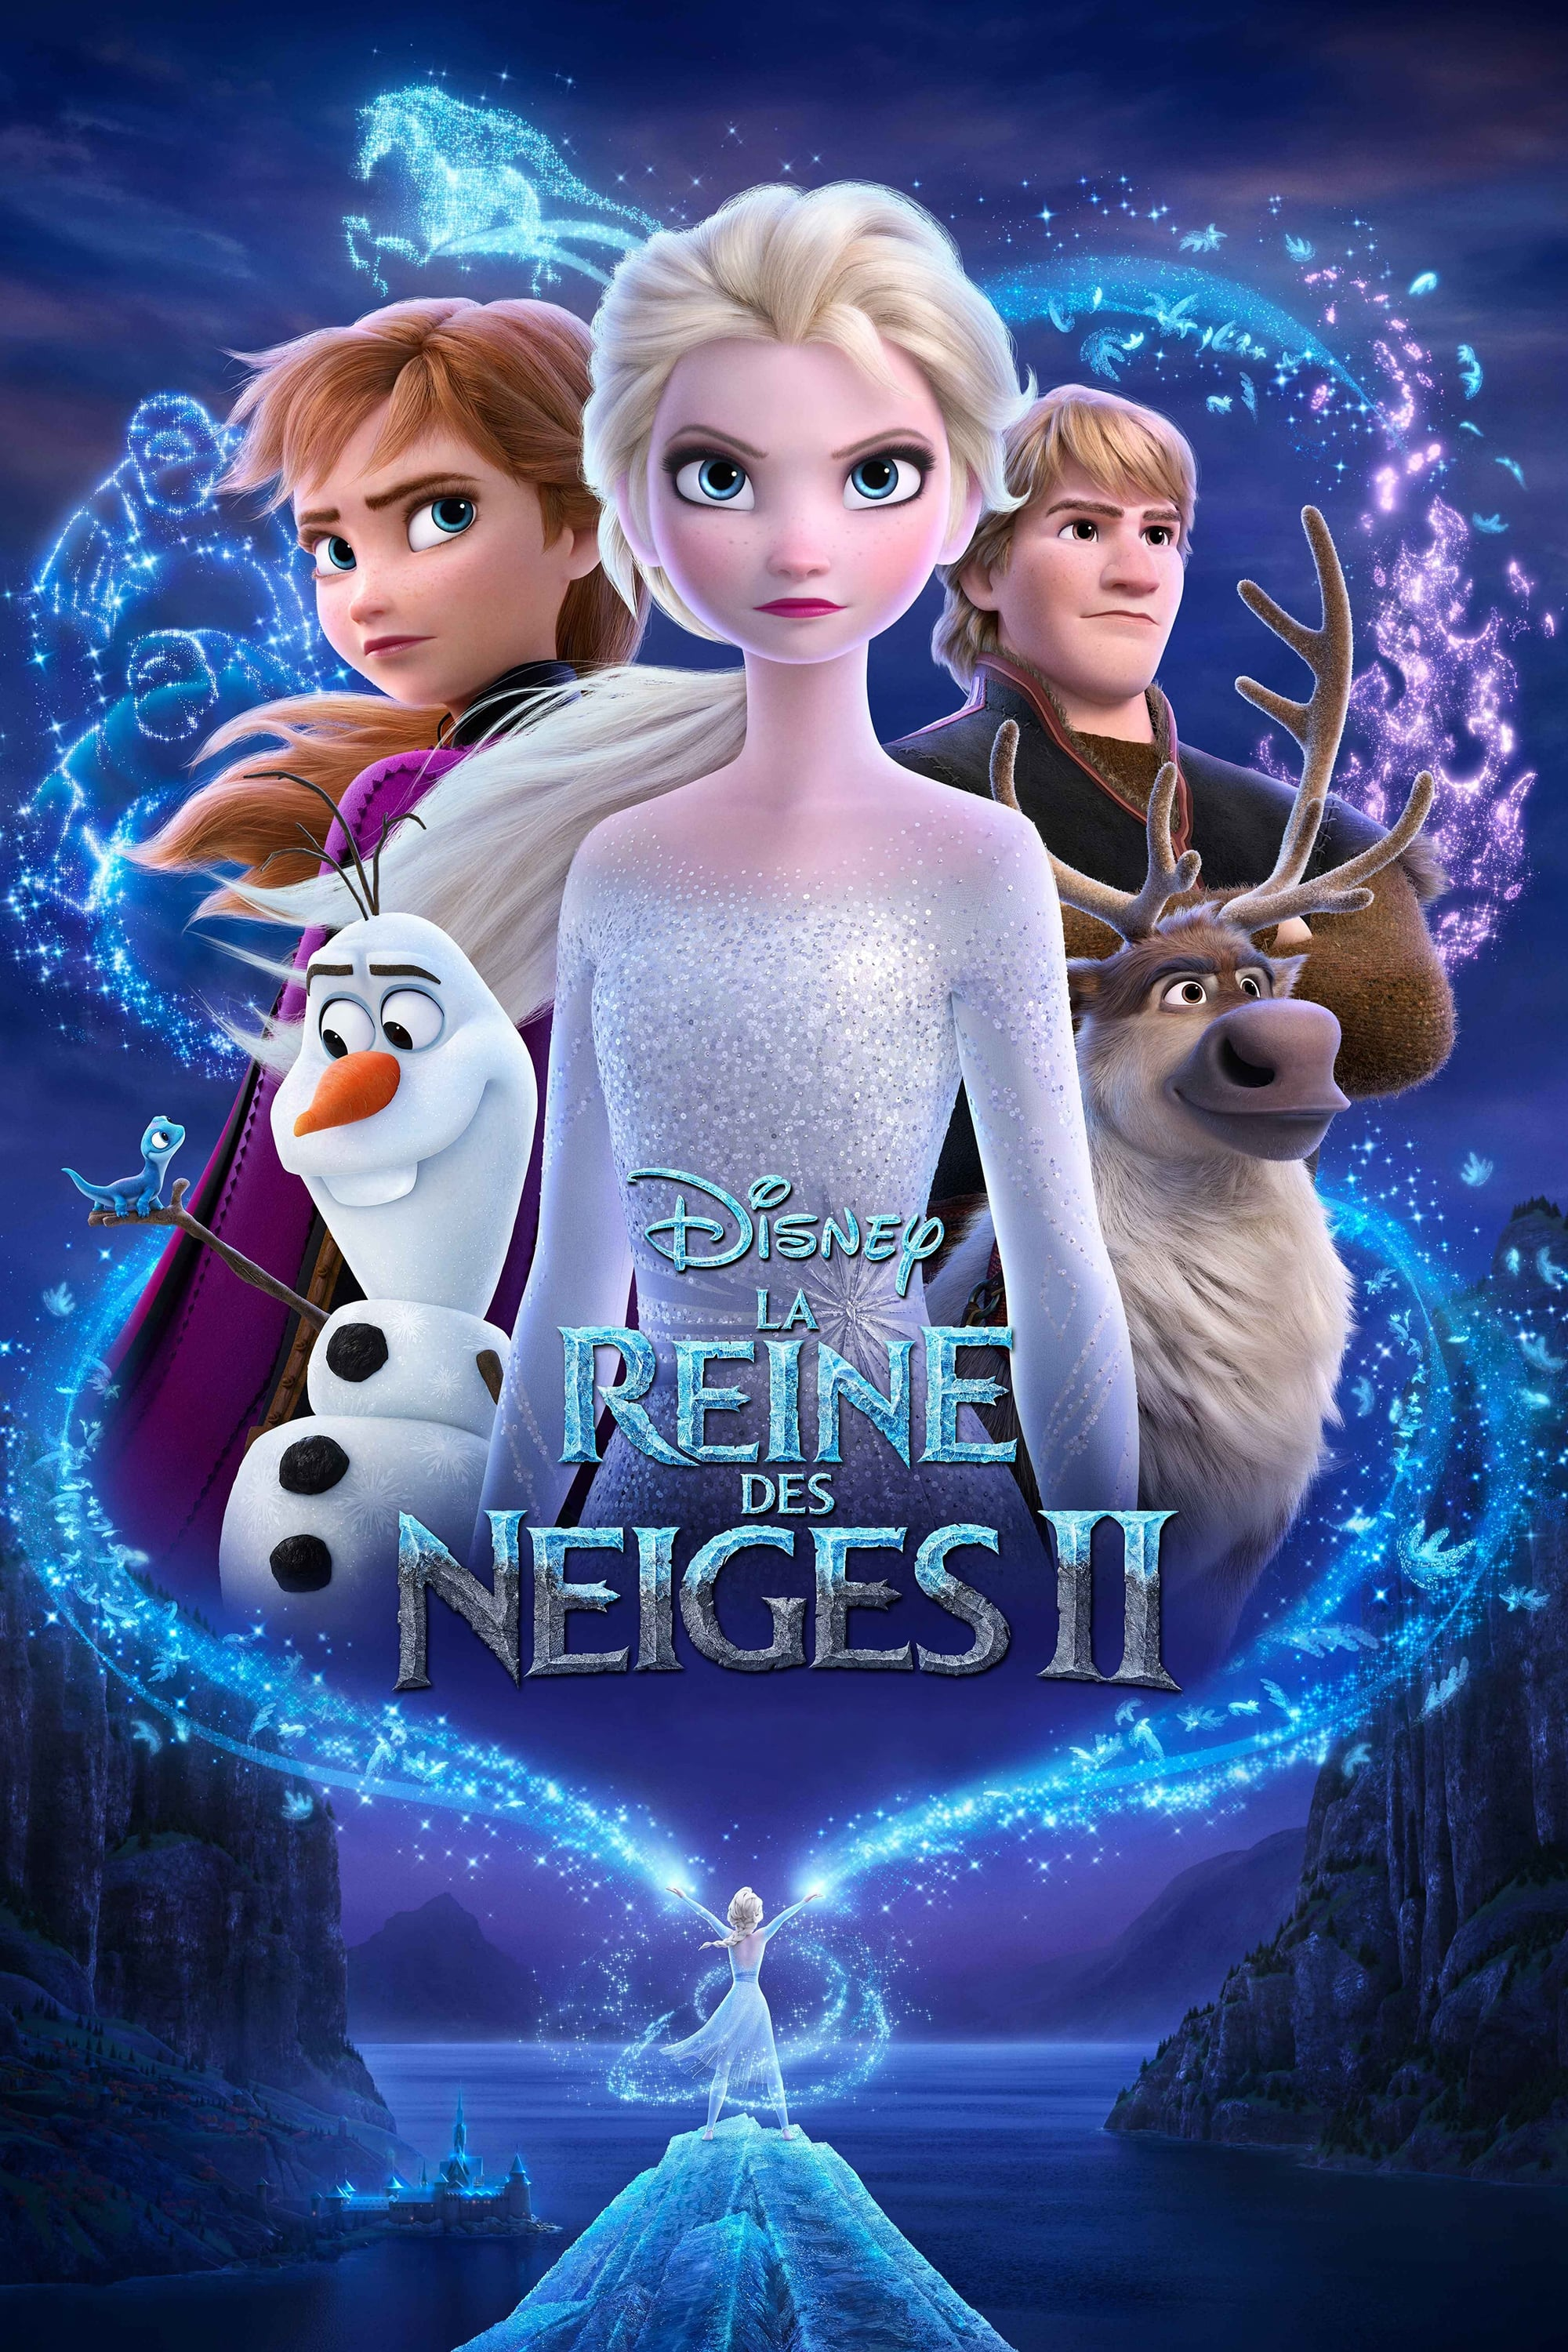 La reine des neiges 2 streaming sur libertyvf